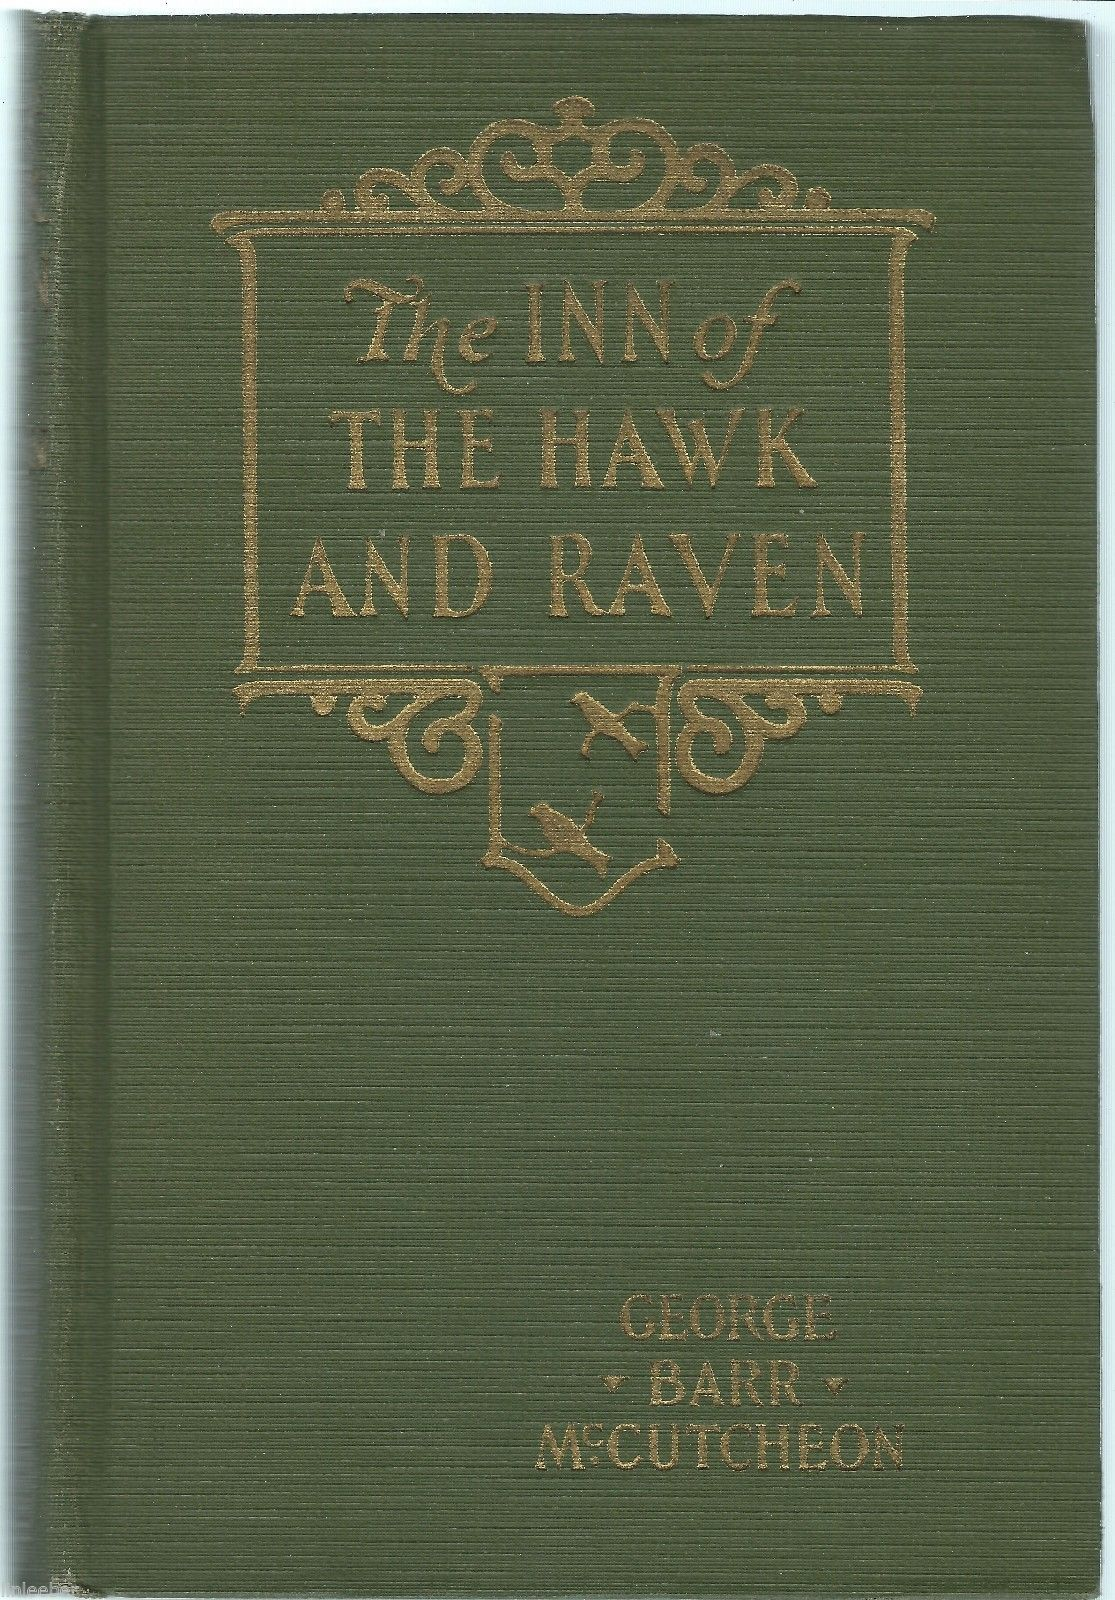 Primary image for The Inn Of The Hawk And Raven- A Tale Of Old Graustark by George Barr McCutcheon